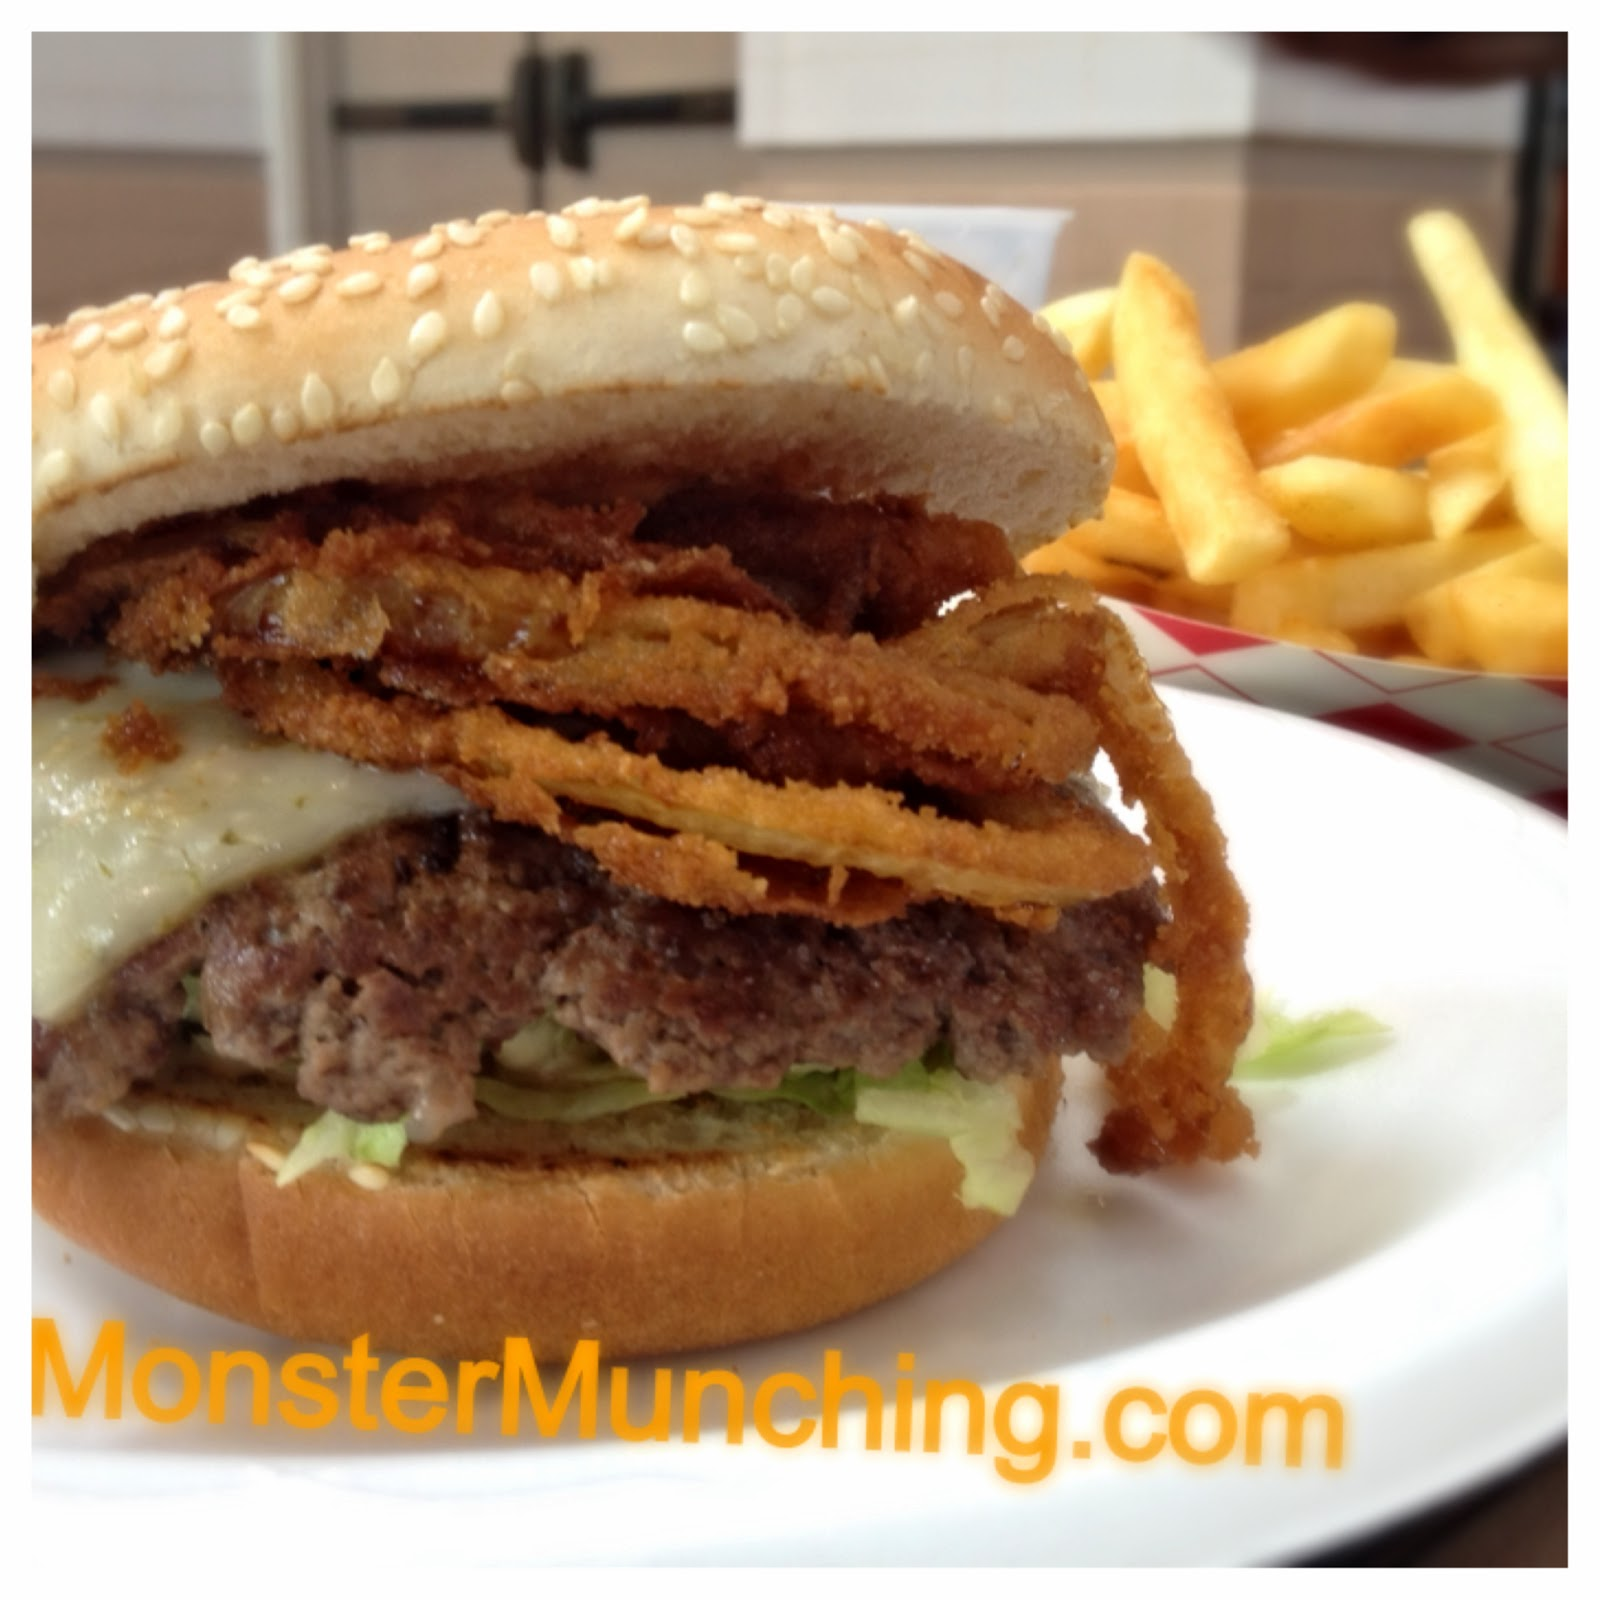 Monster Munching: Gourmet Burgers - Irvine